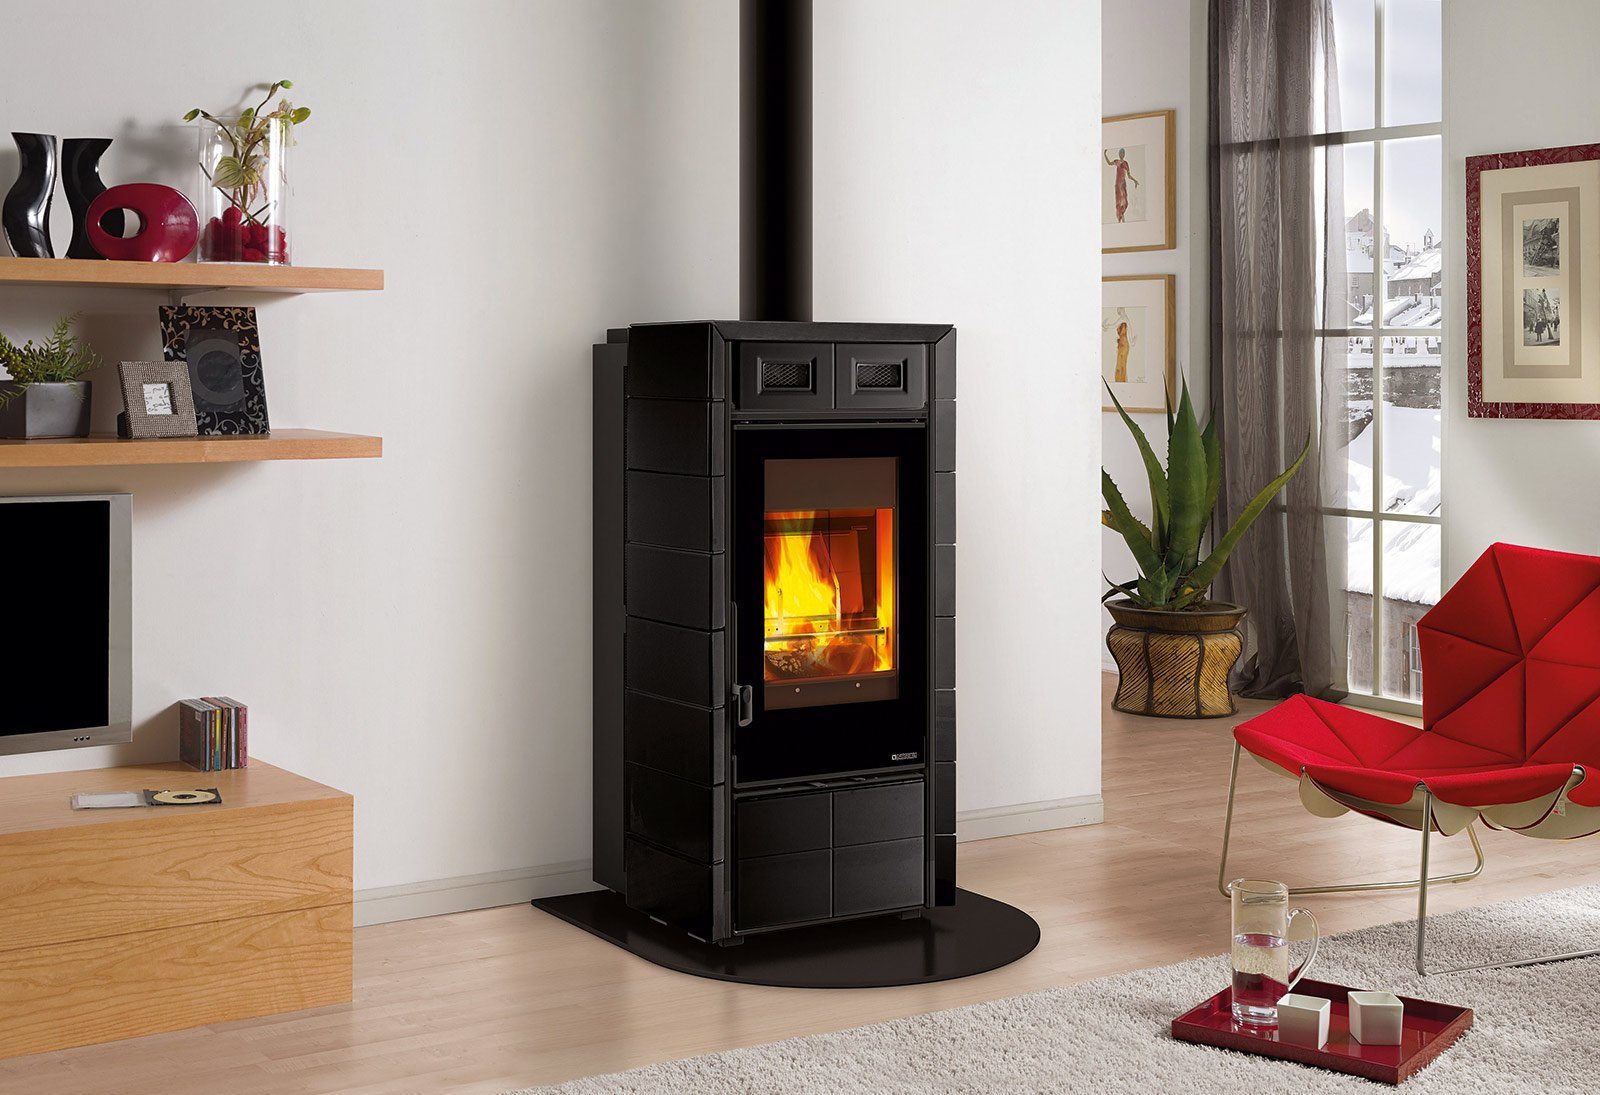 Stufe a pellet d 39 arredo ecologiche cose di casa for Stufe combinate legna pellet nordica